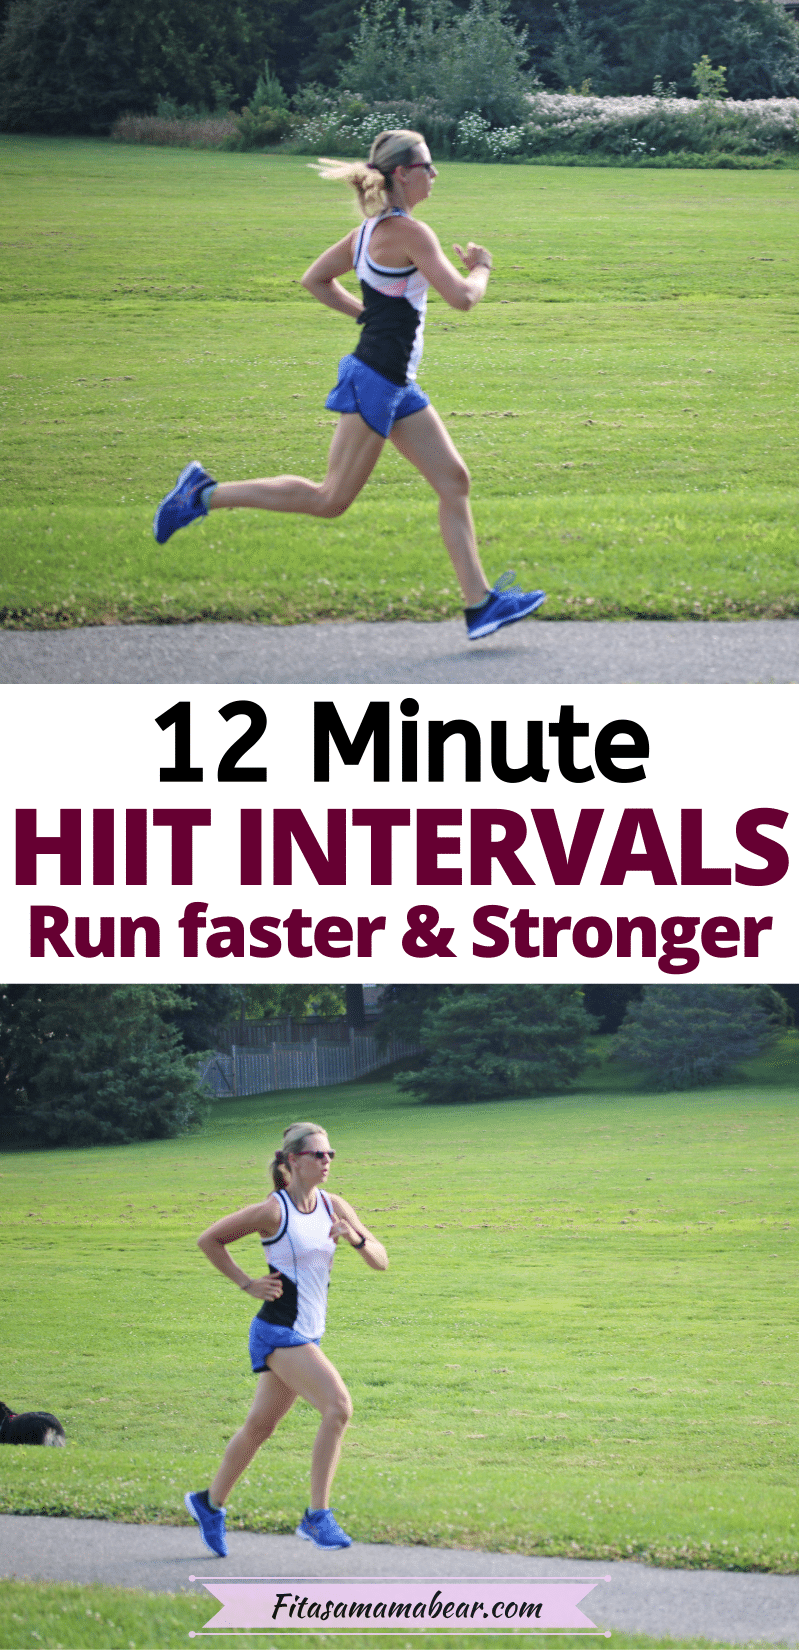 Pinterest image with text: two images of a lady running through a park